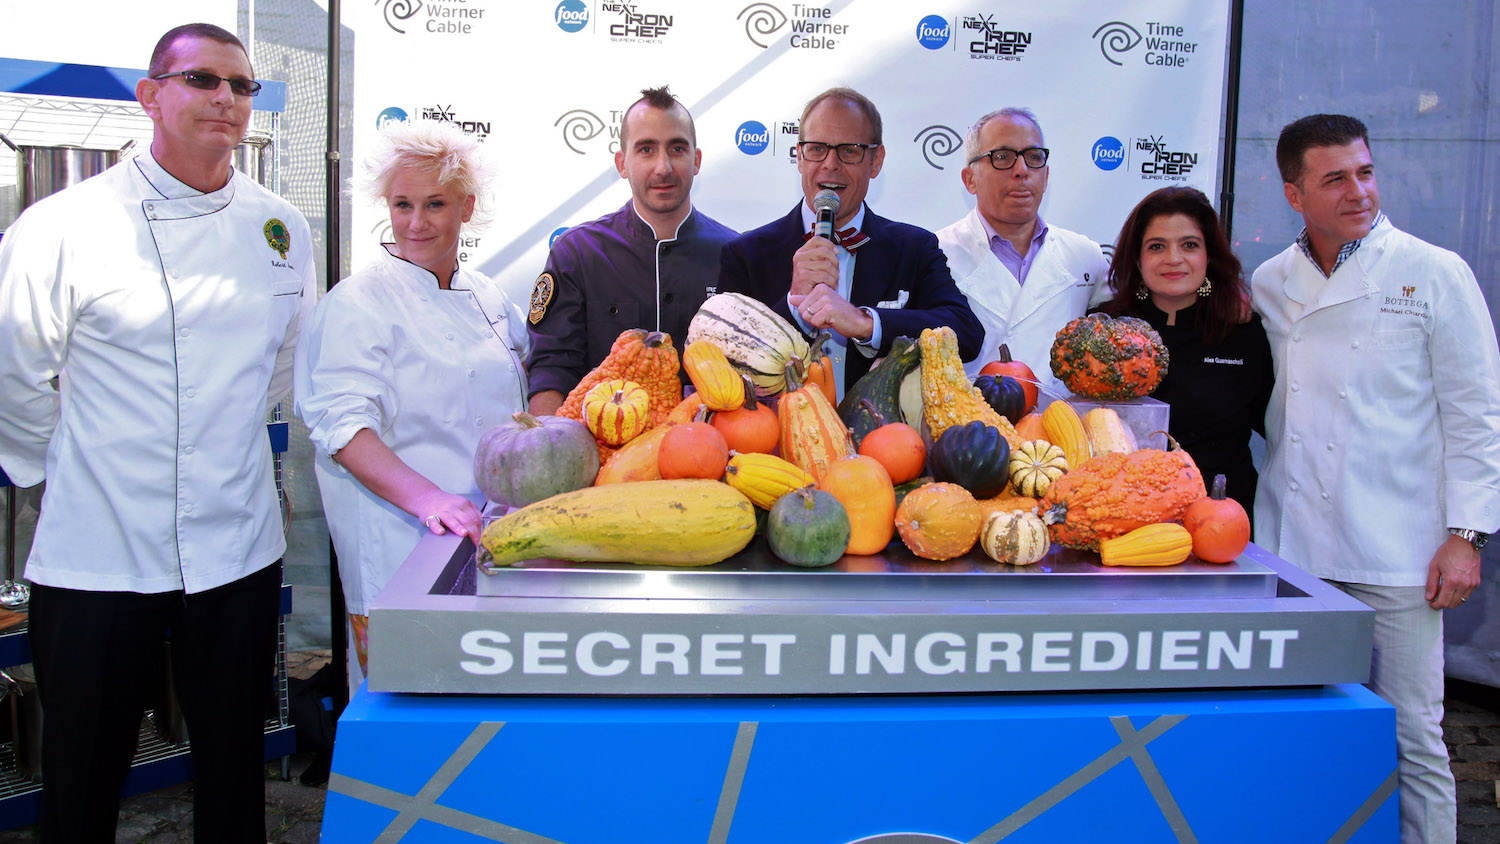 Iron Chef spin-offs